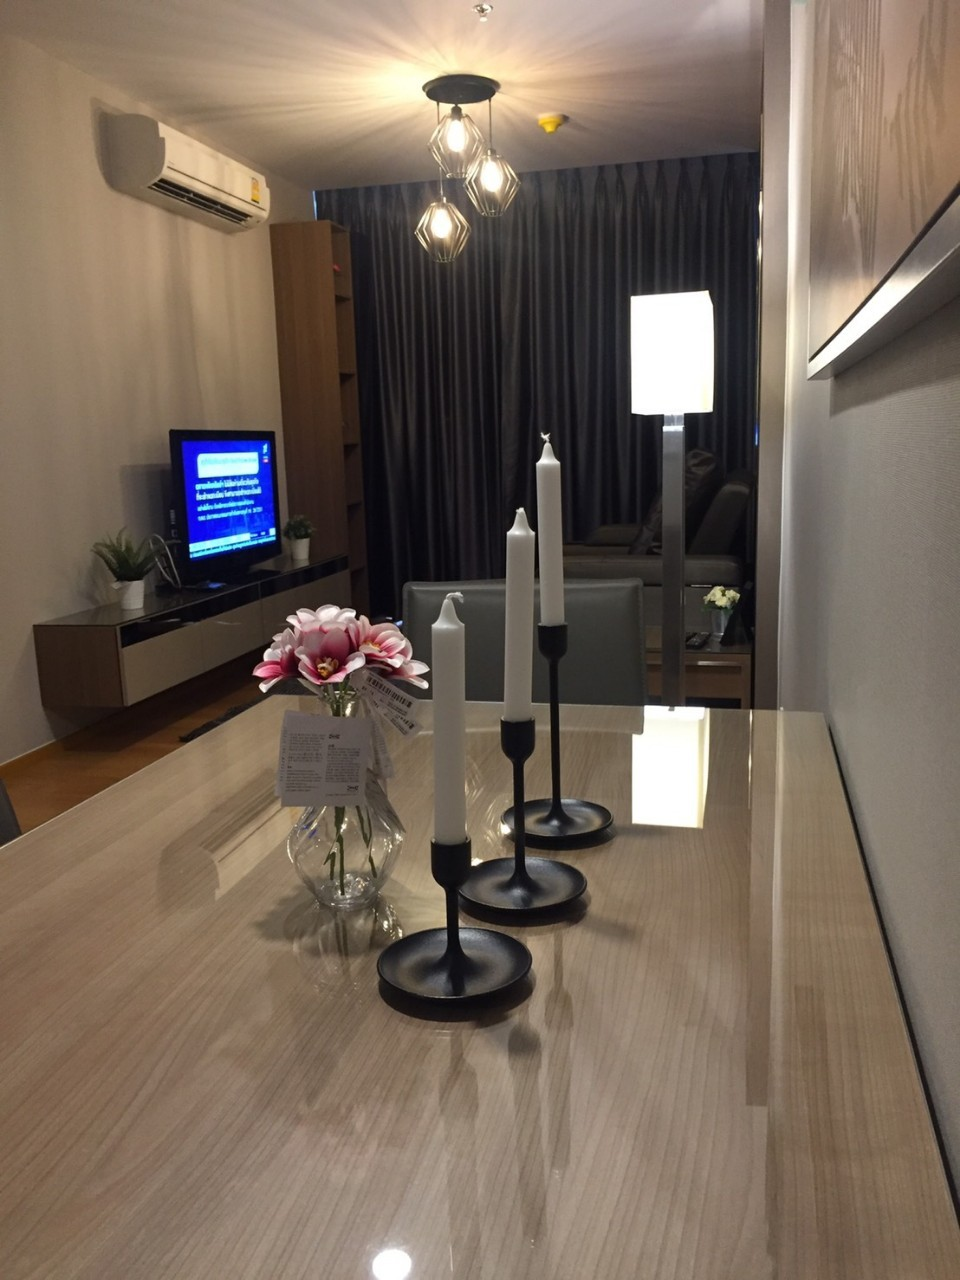 For Rent NOBLE REVO SILOM***Special Price 29,000*** Corner Unit and River View